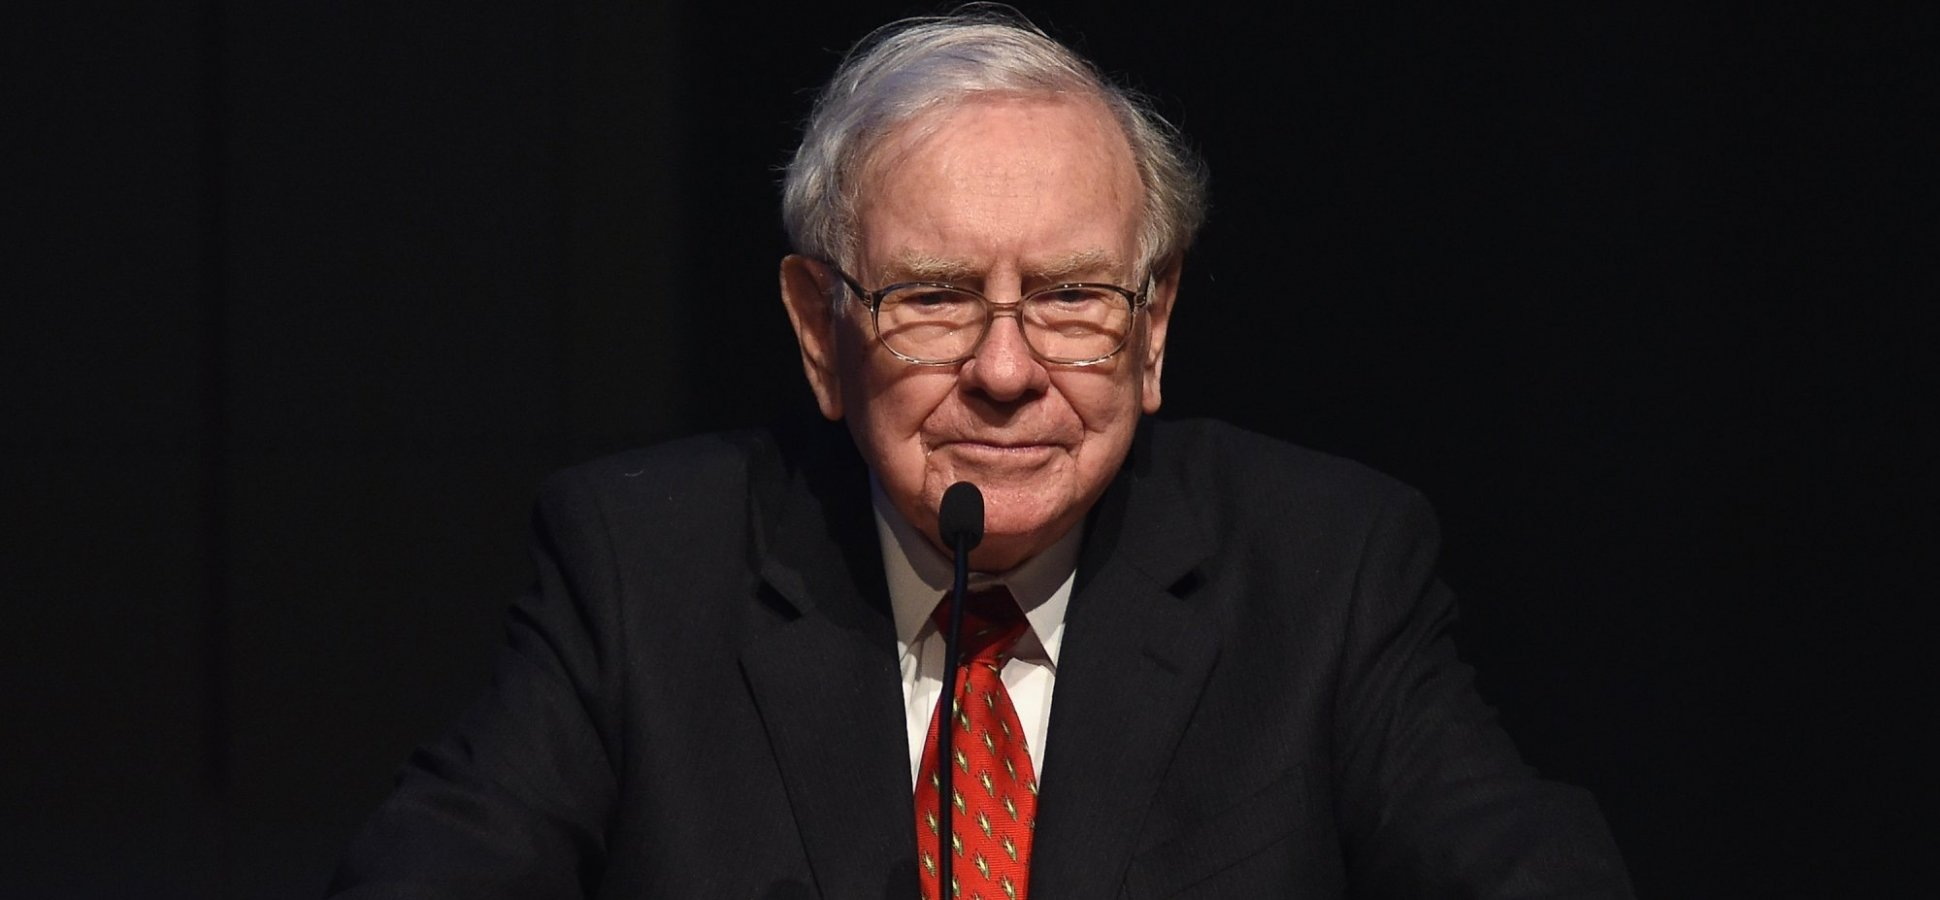 Warren Buffett Says Anyone Can Achieve Success if They Follow 1 Simple Rule He Calls 'The Buffett Formula'